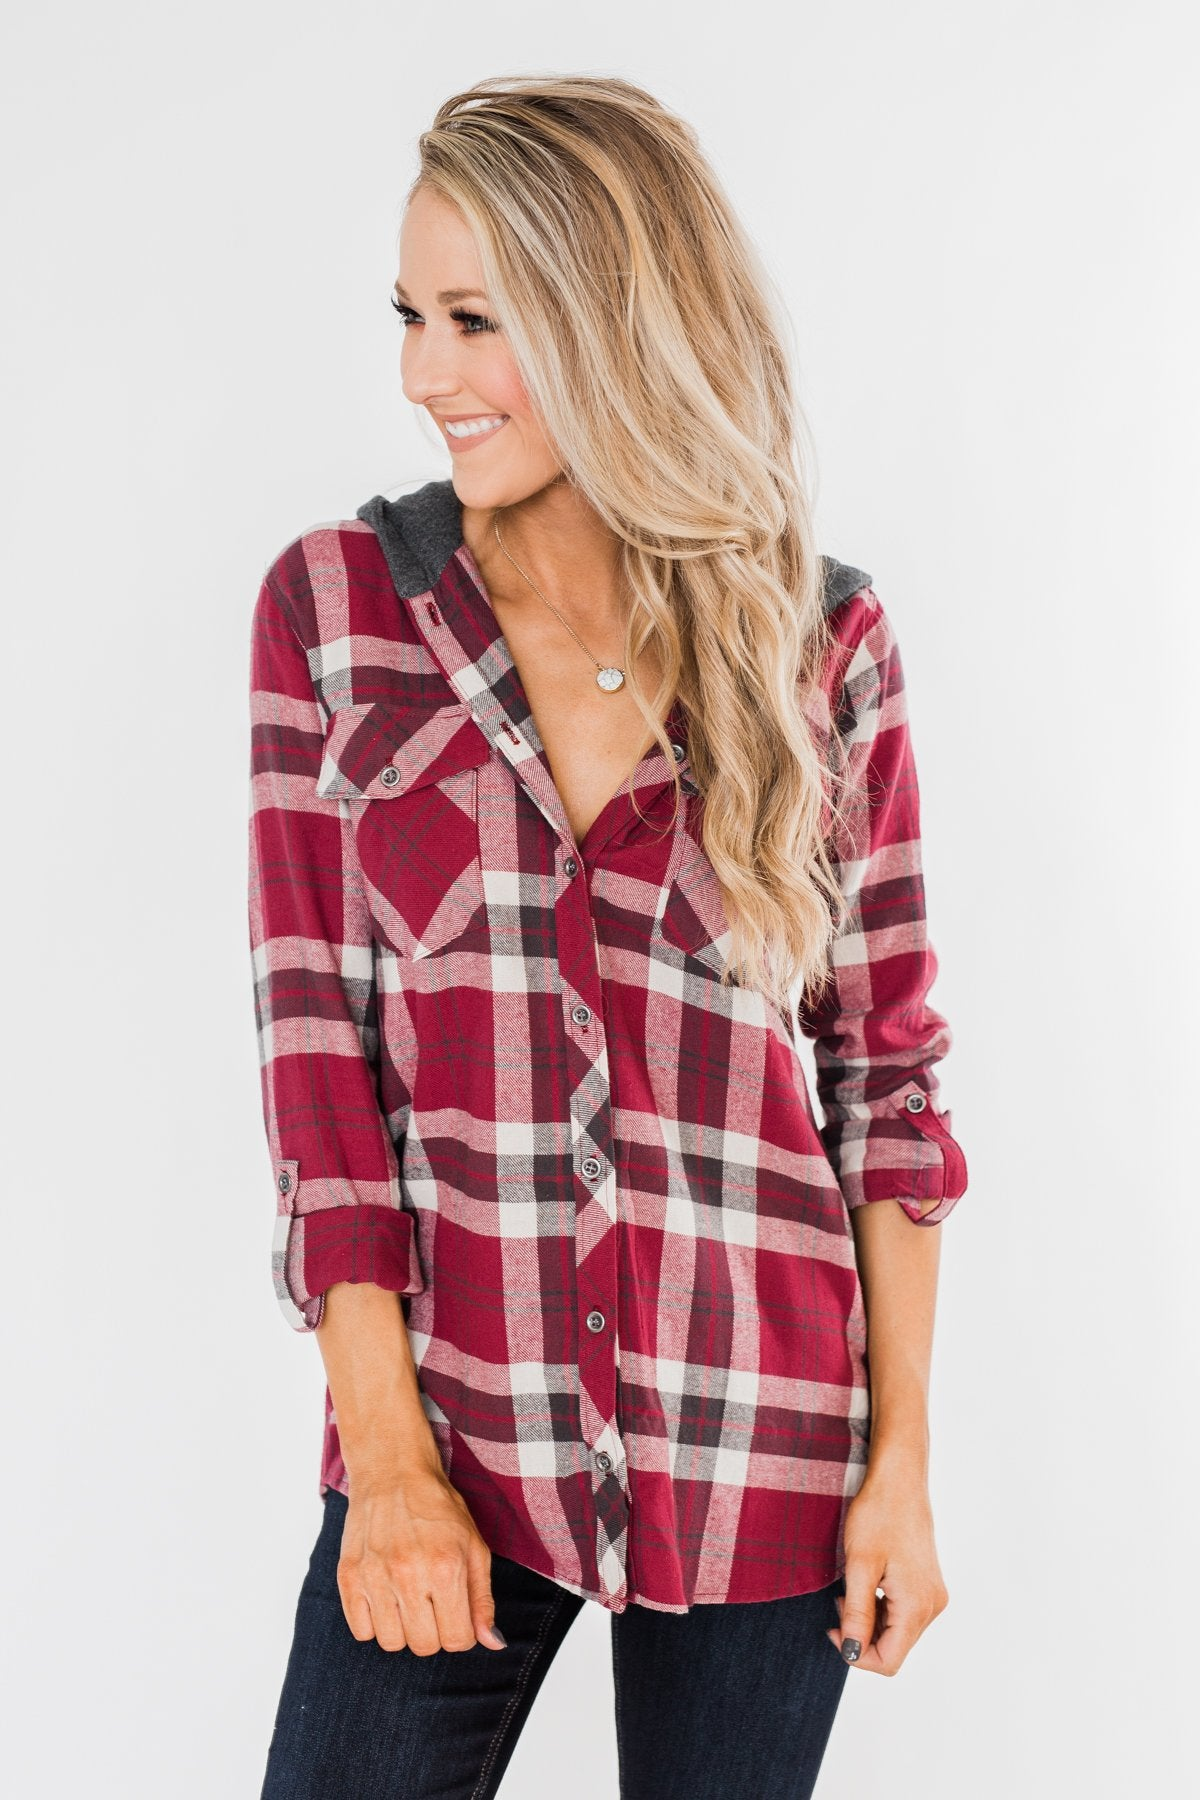 So Long To You Plaid Hooded Top- Dark Berry